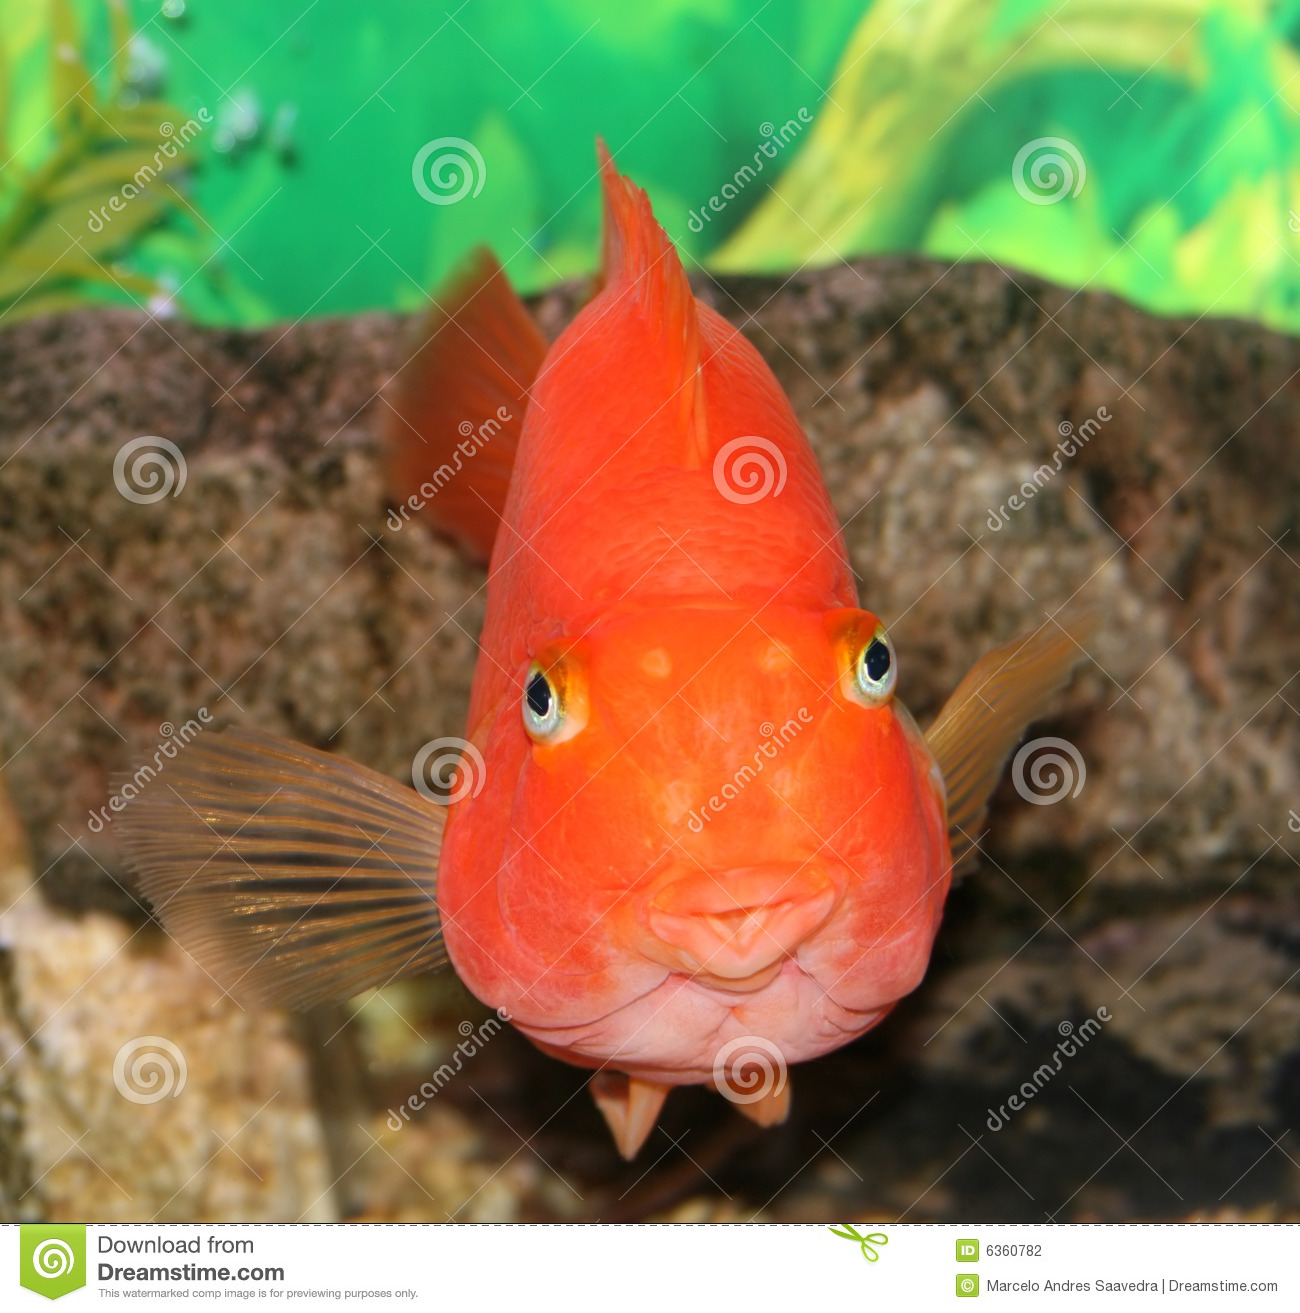 Red parrot fish stock photography image 6360782 for Parrot fish freshwater